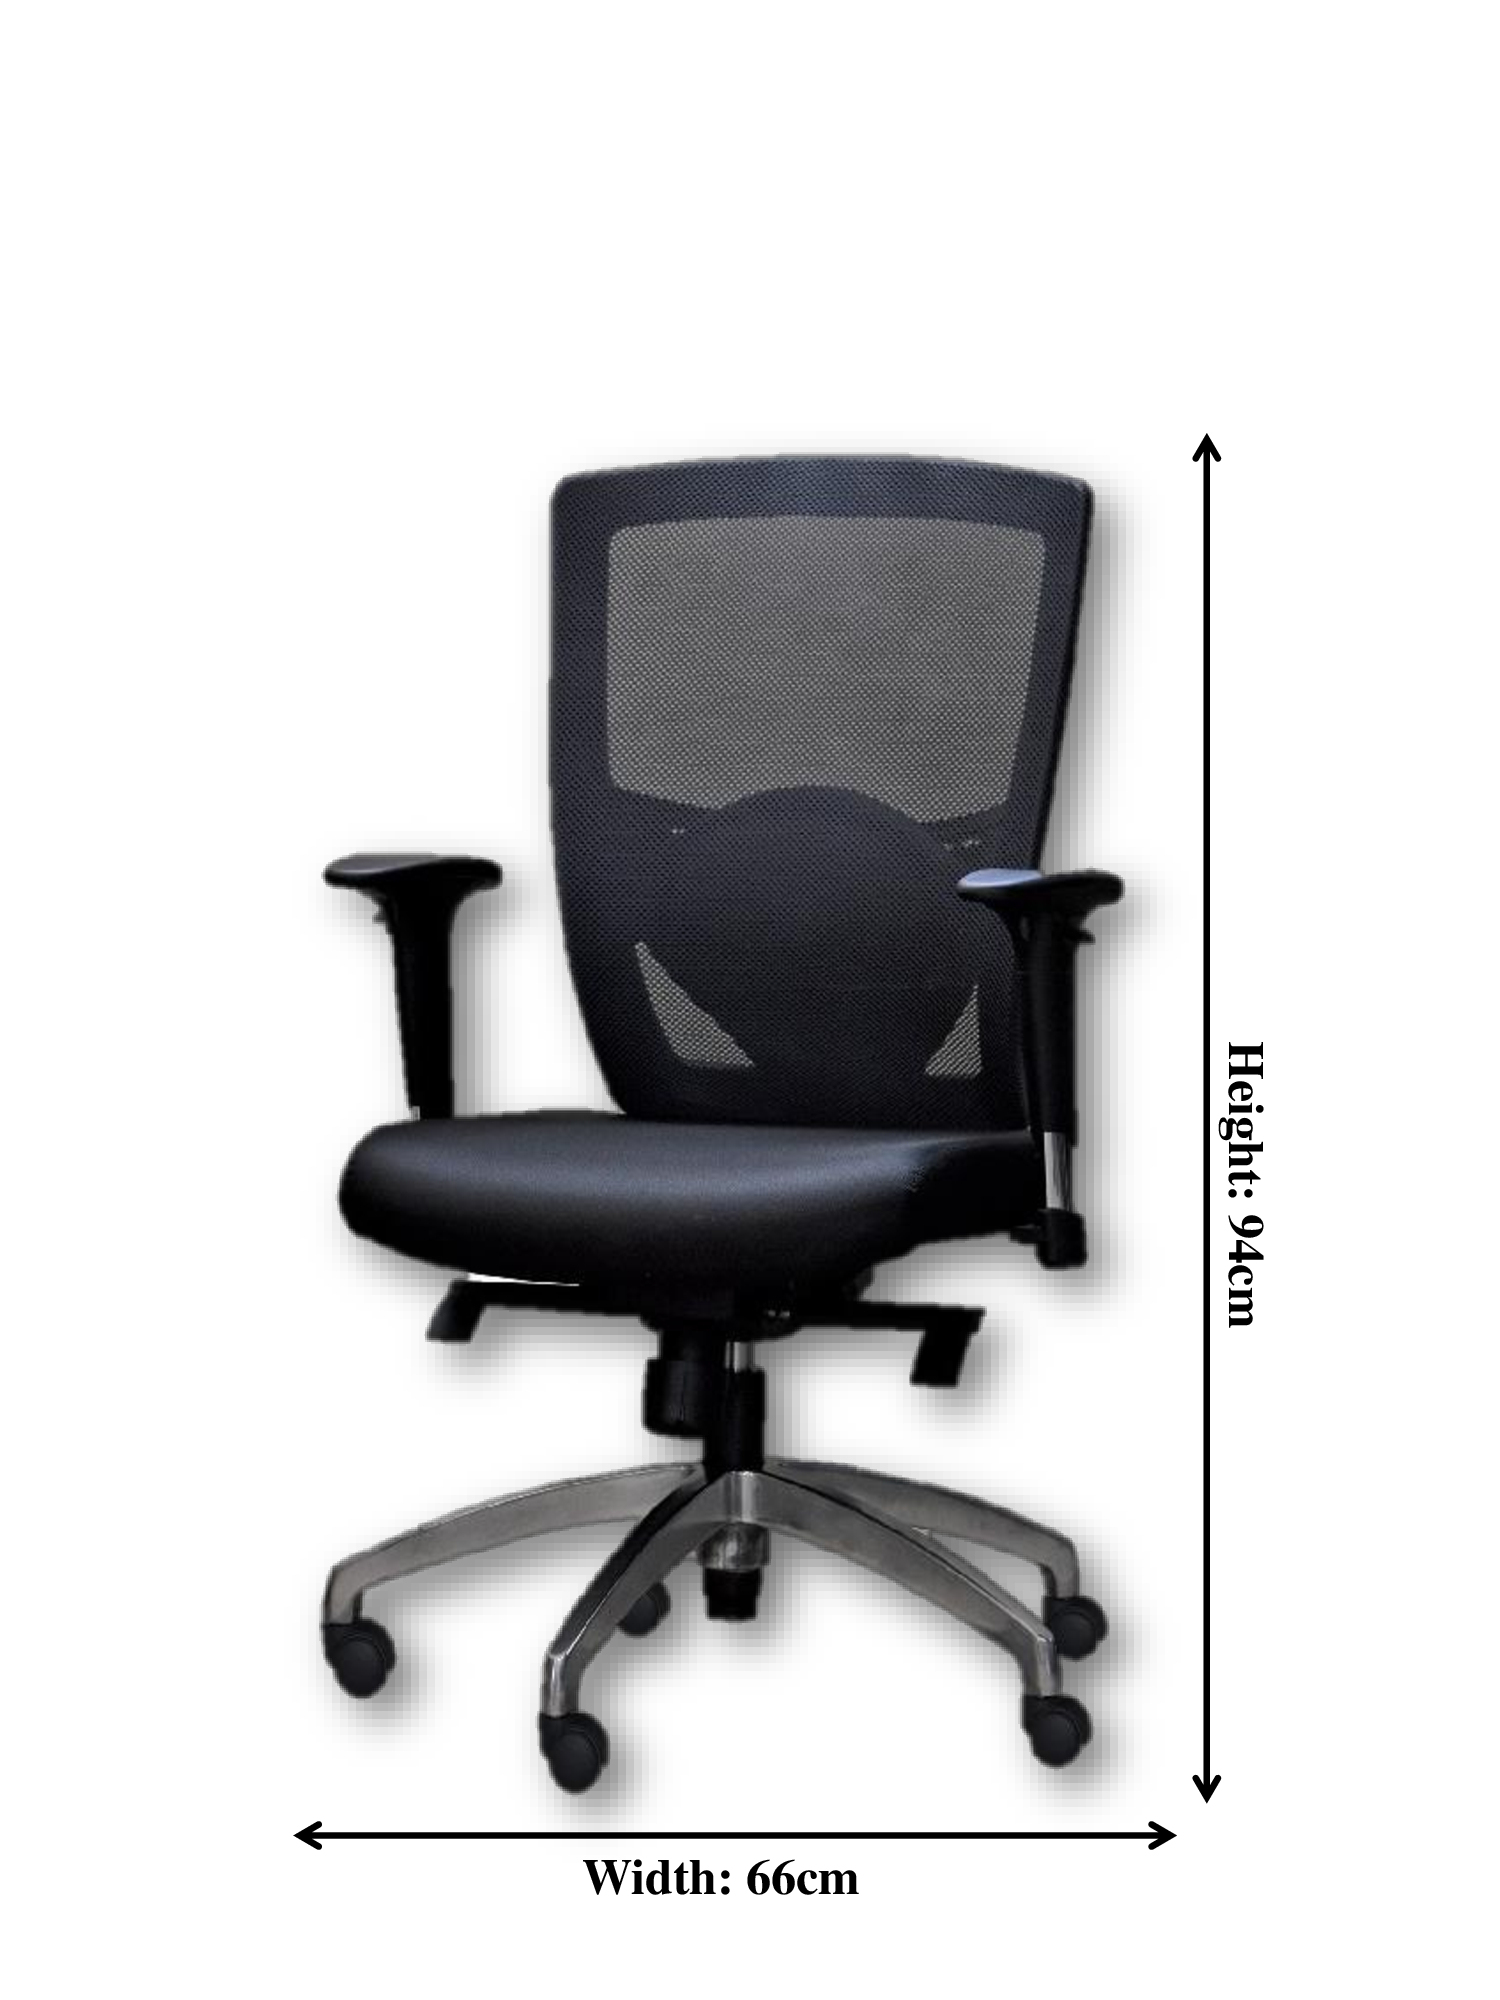 the-directorial-dimension.alterseat.com directorial no headrest product. alterseat copyrights